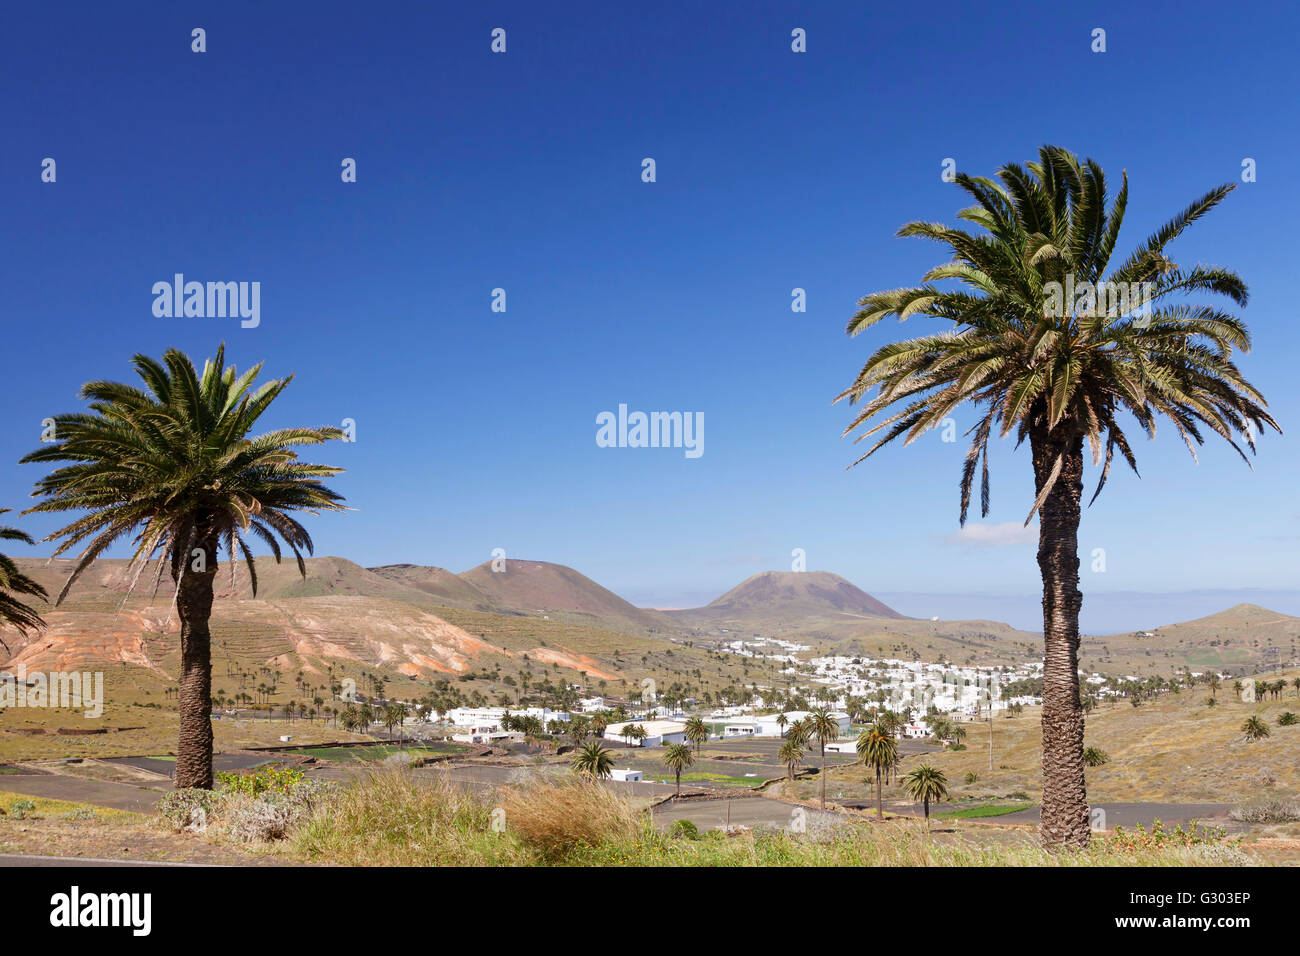 Haría, Valley of a Thousand Palms, Lanzarote, Canary Islands, Spain - Stock Image